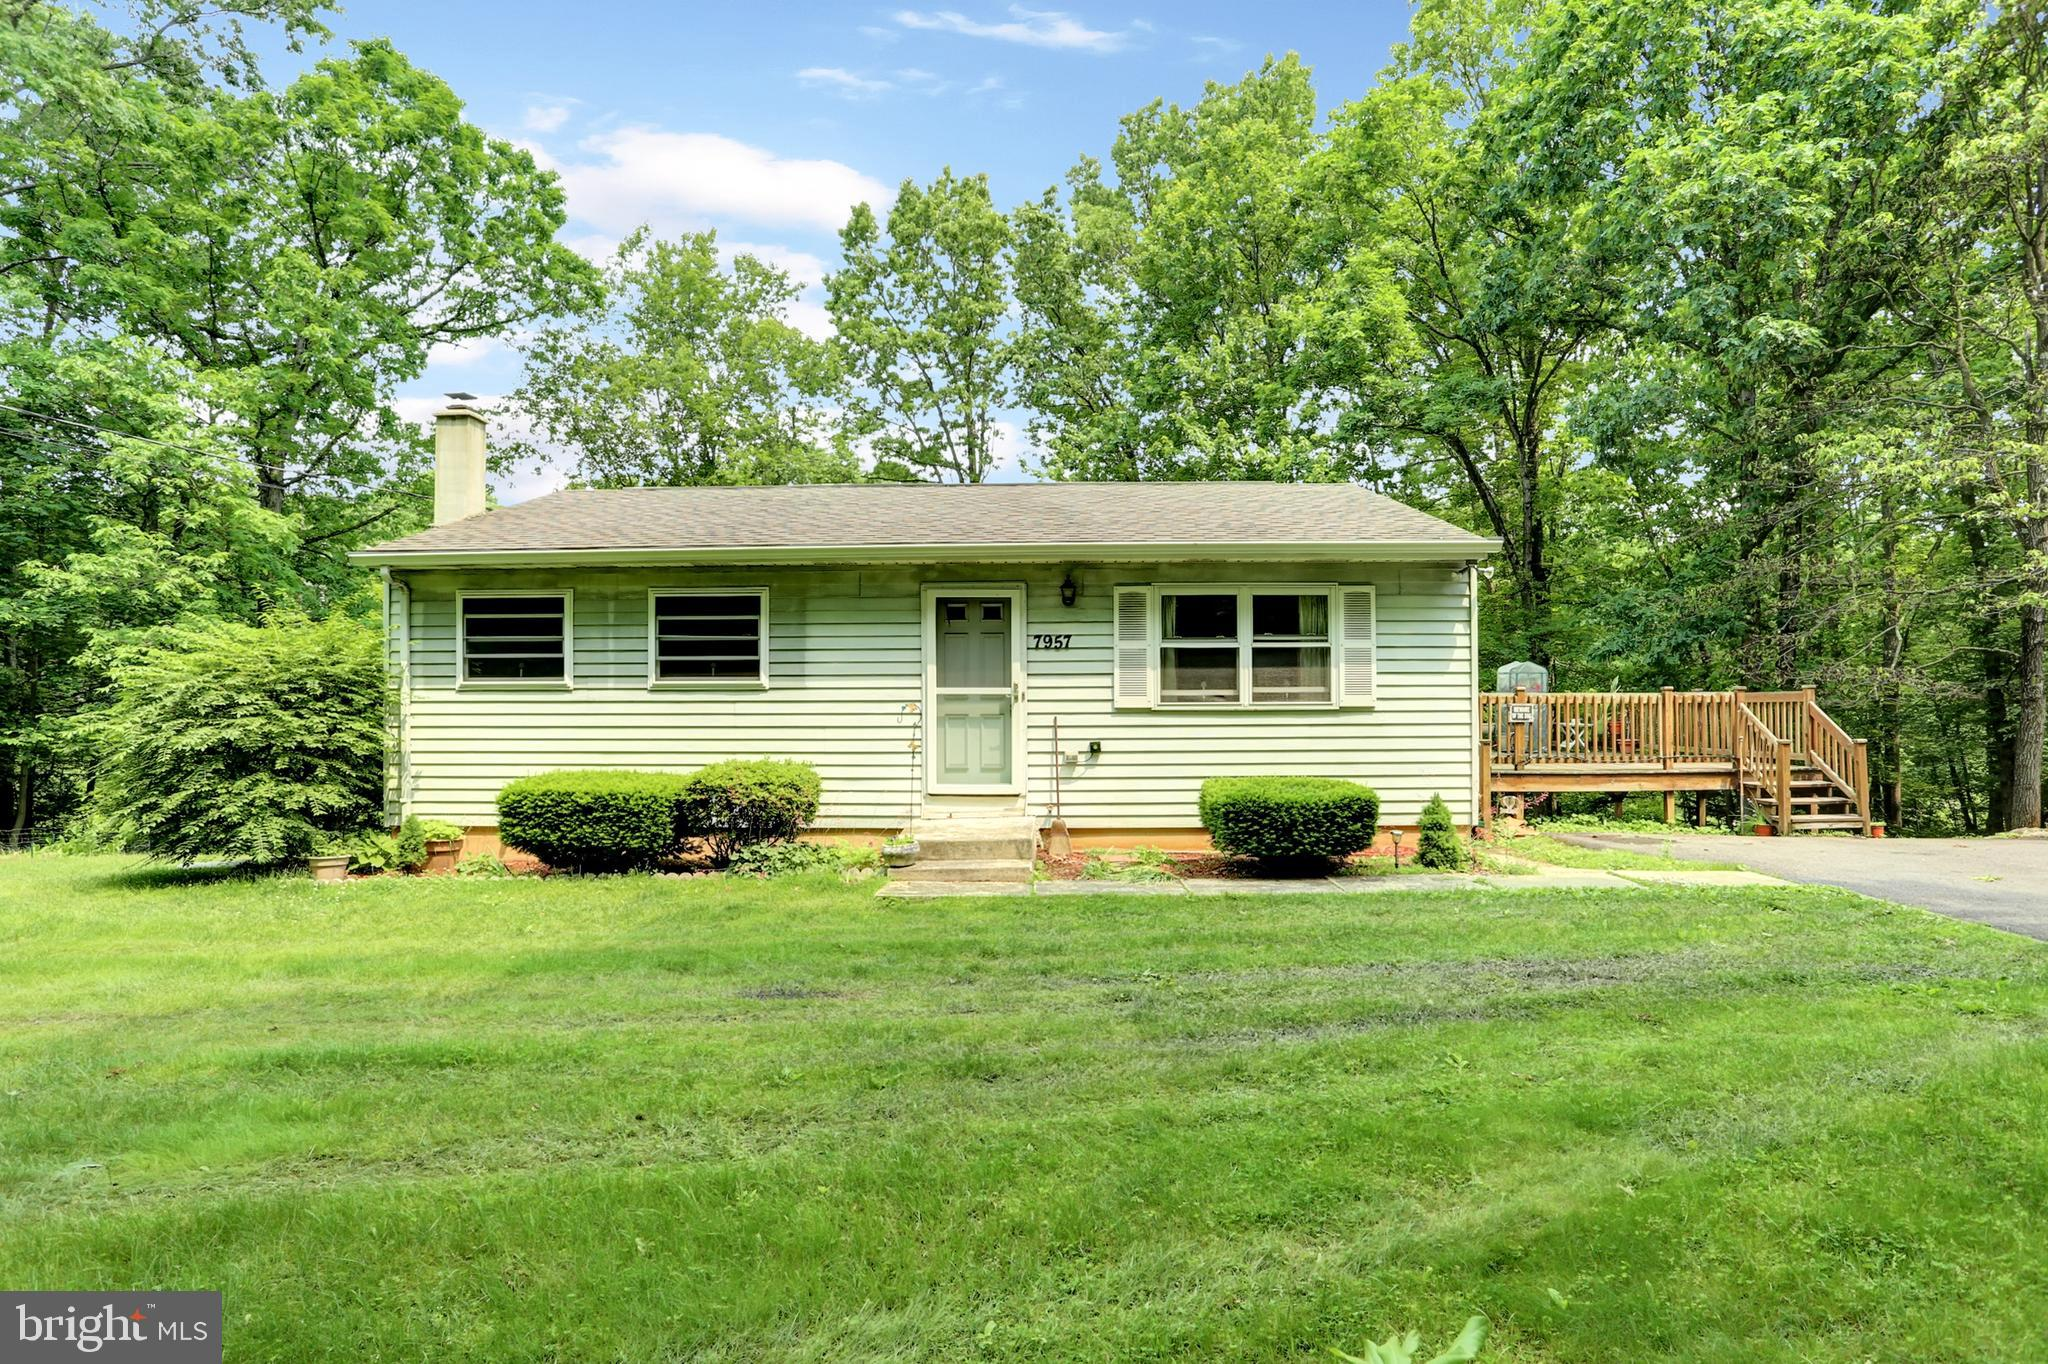 7957 ROUTE 209, LYKENS, PA 17048